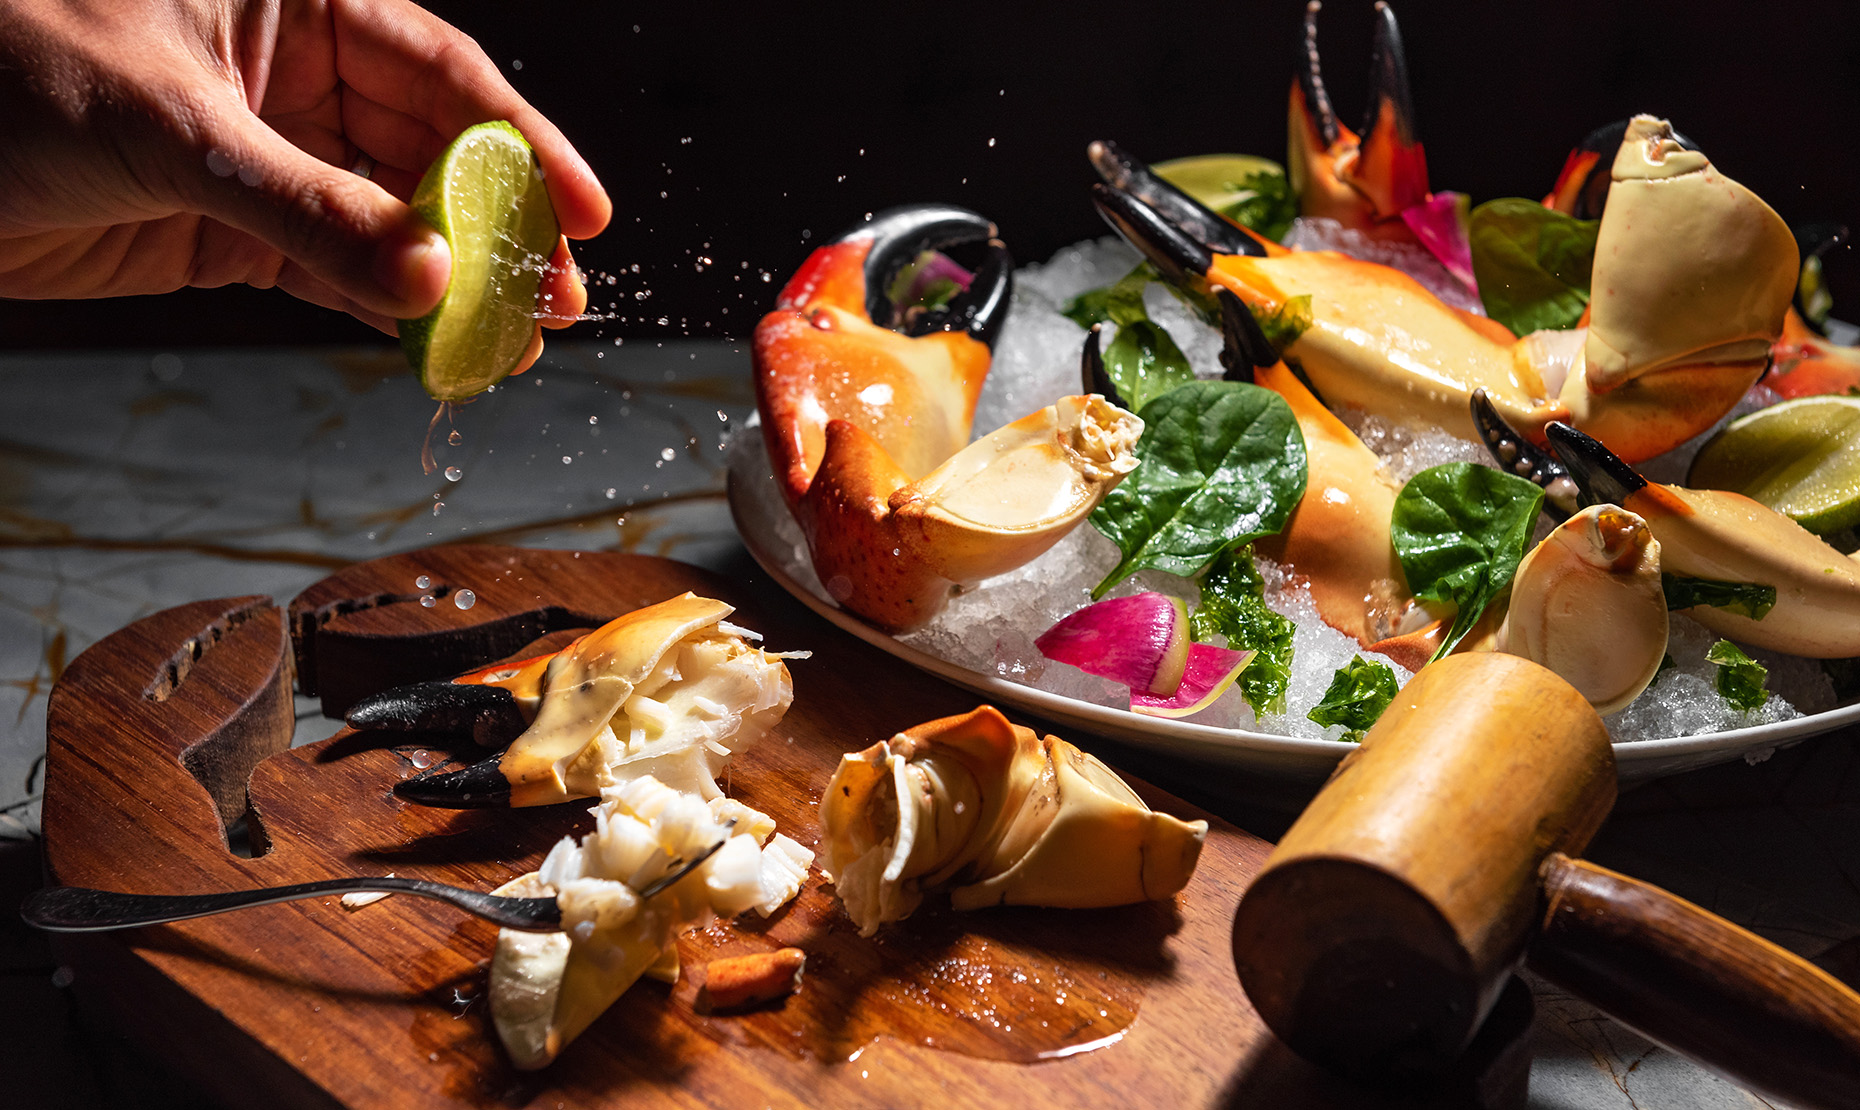 Food Photographer|Cancun|Enrique Serrano|Crabster